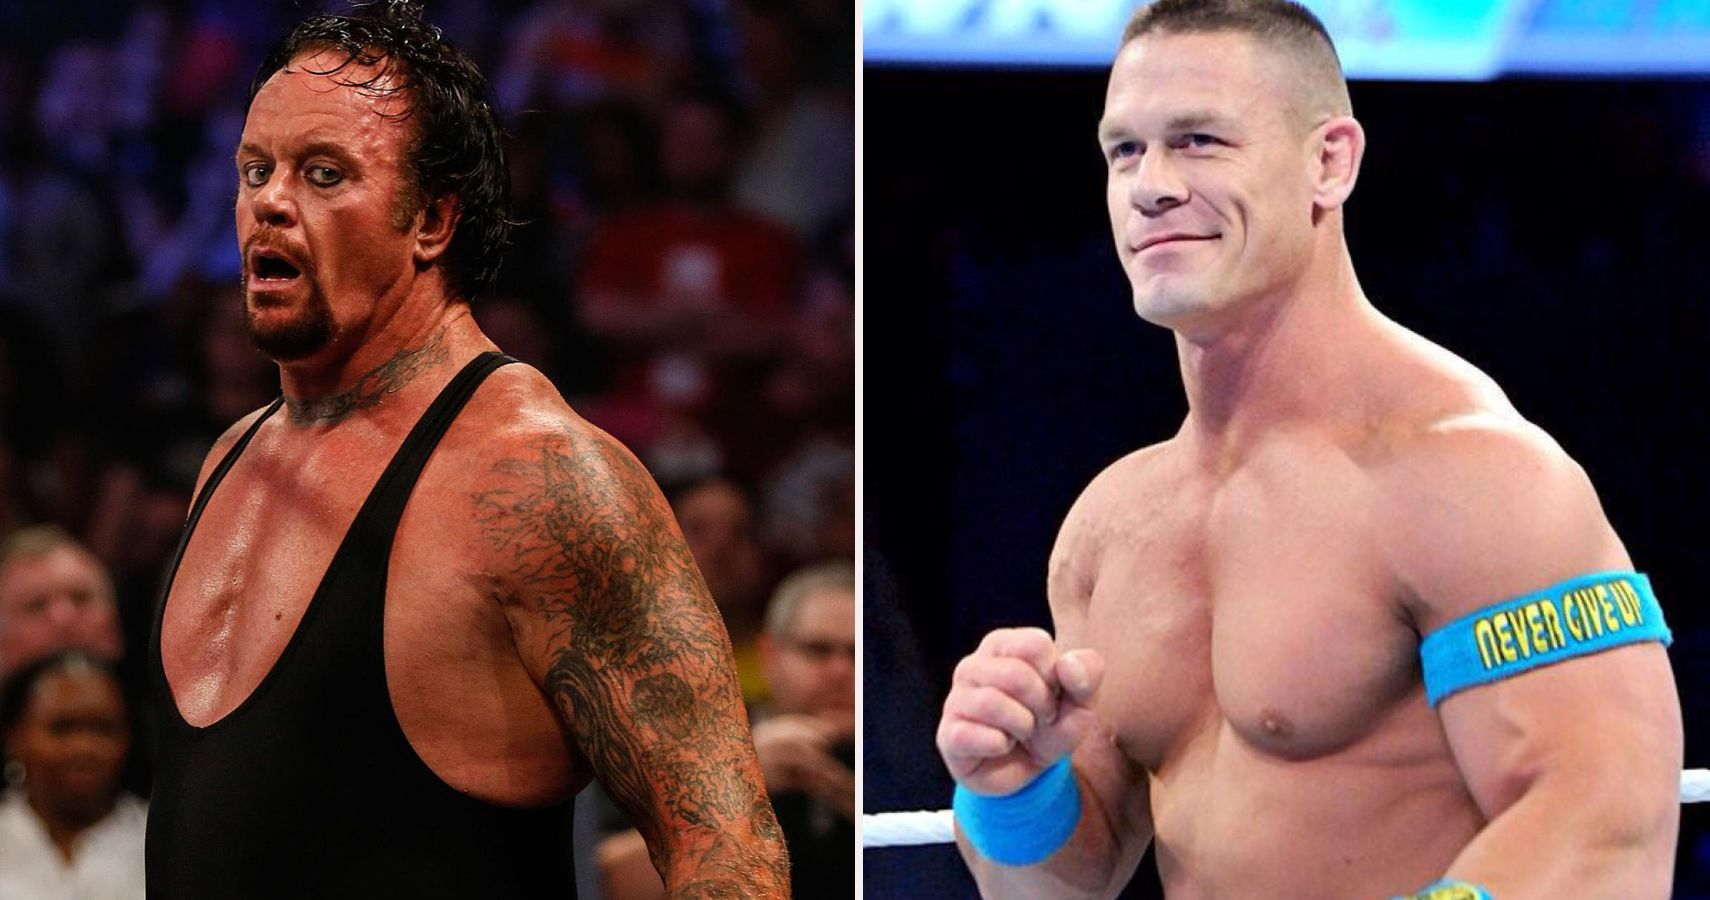 10 Massive Wrestlers Who Have Probably Never Used Steroids